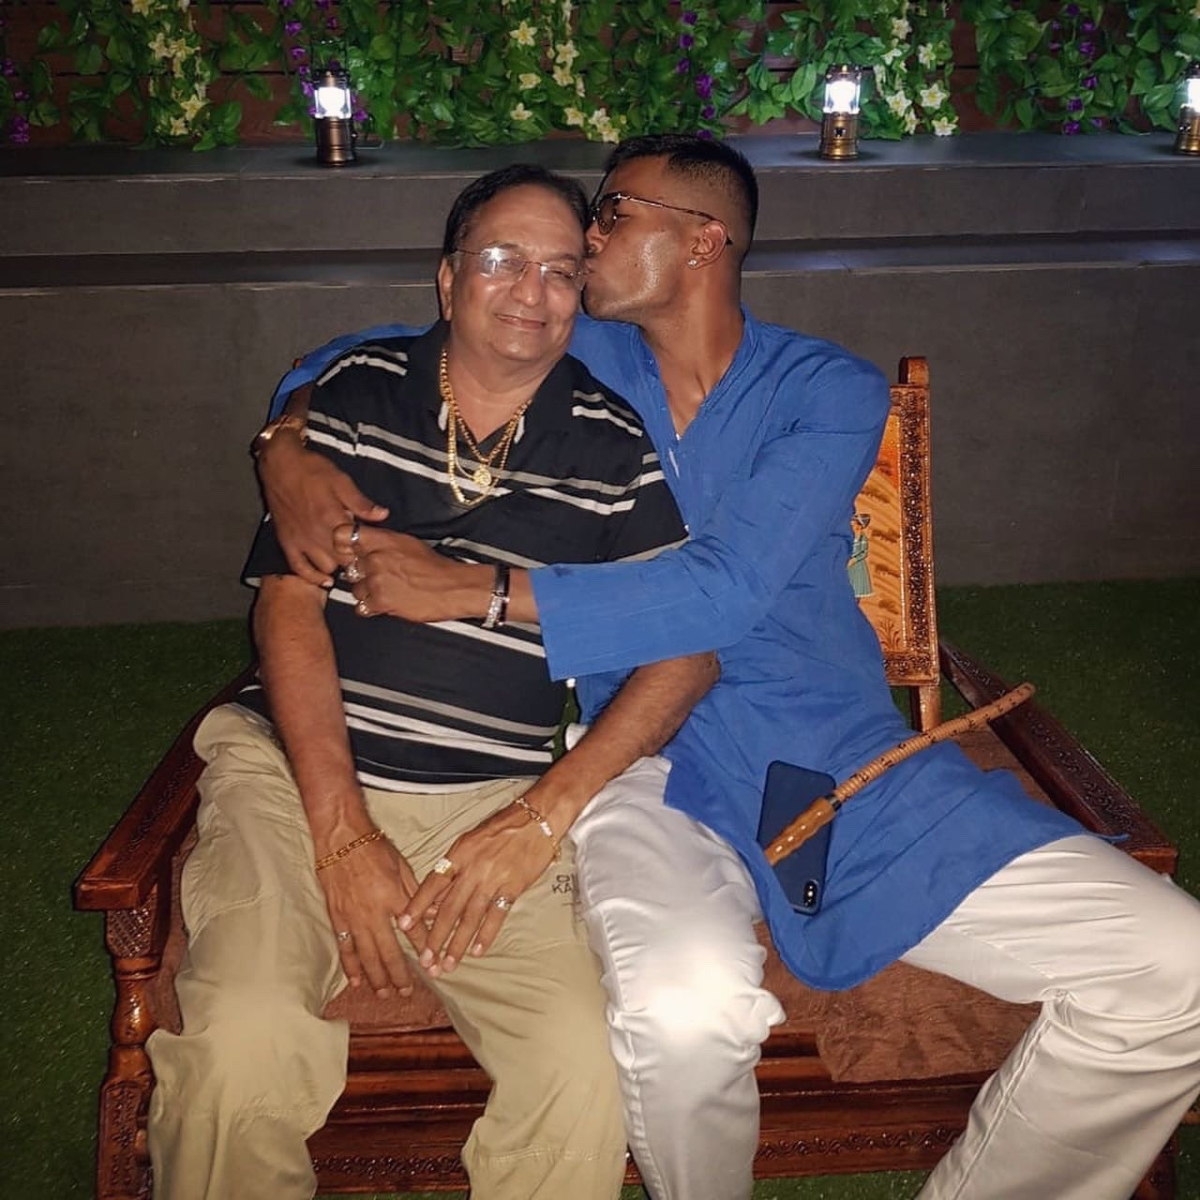 Rest in peace my king: Hardik Pandya's emotional tribute to his late father